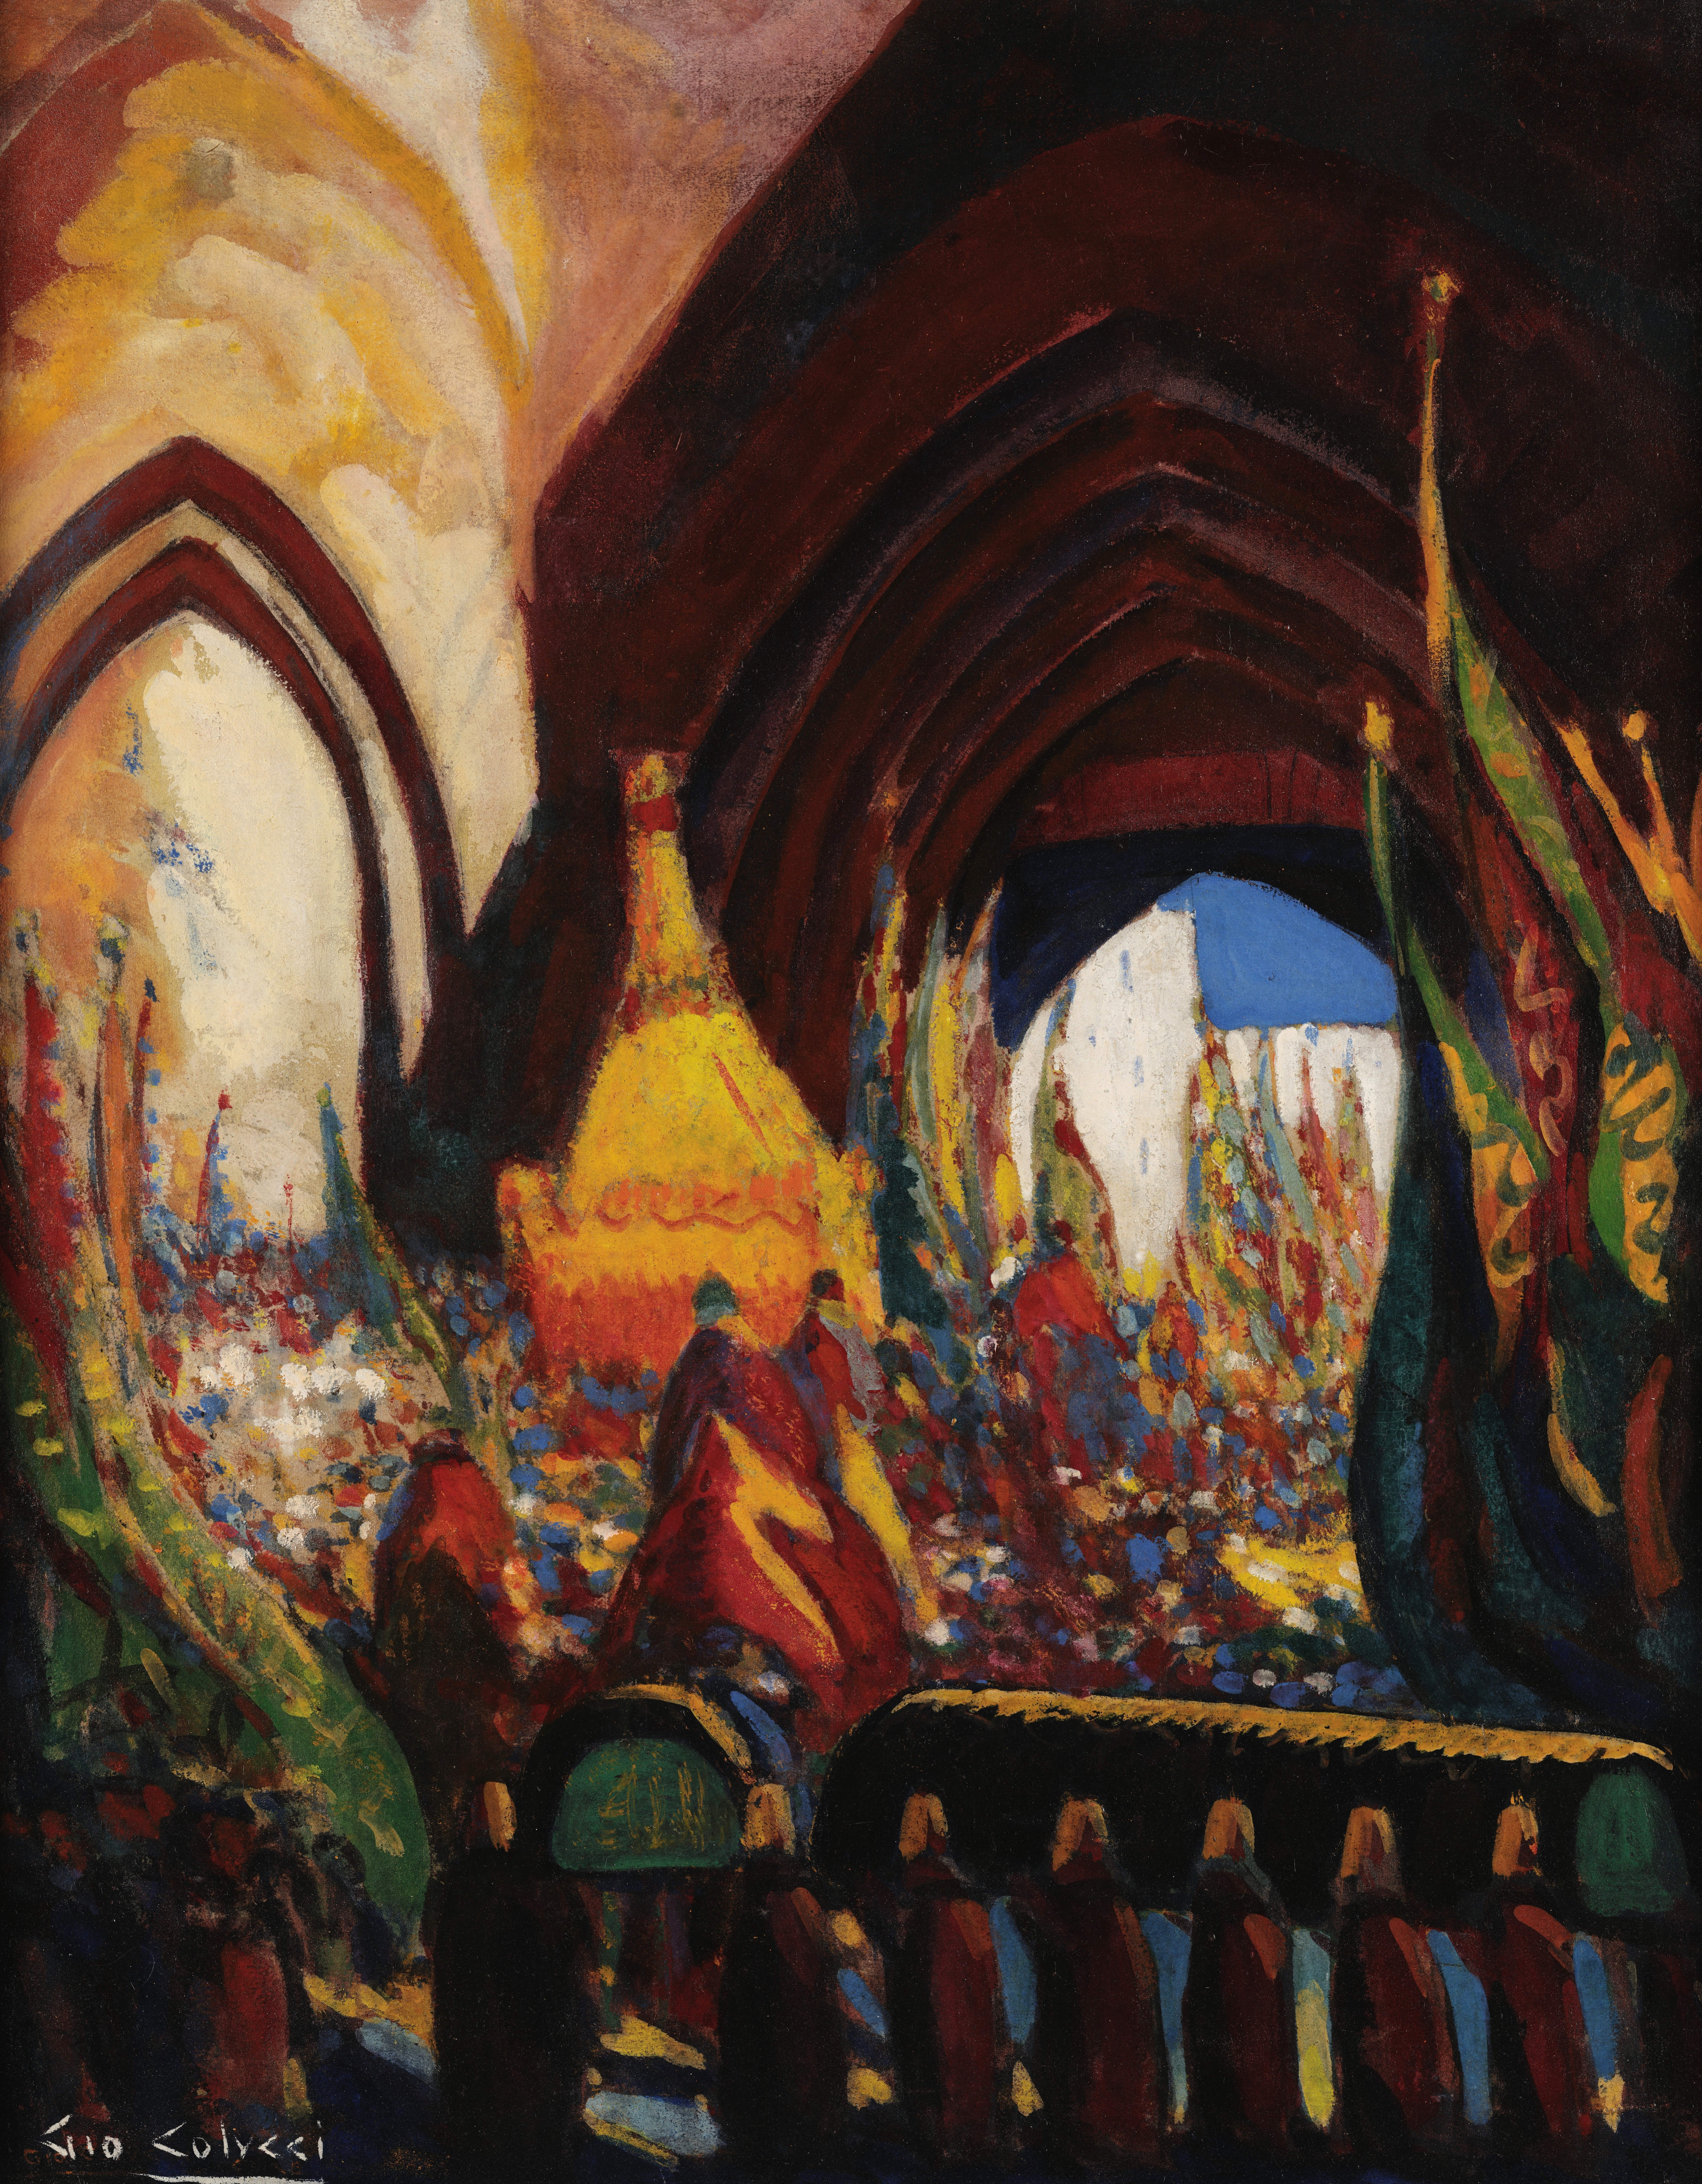 'The procession of the mahmal' by Gio Colucci